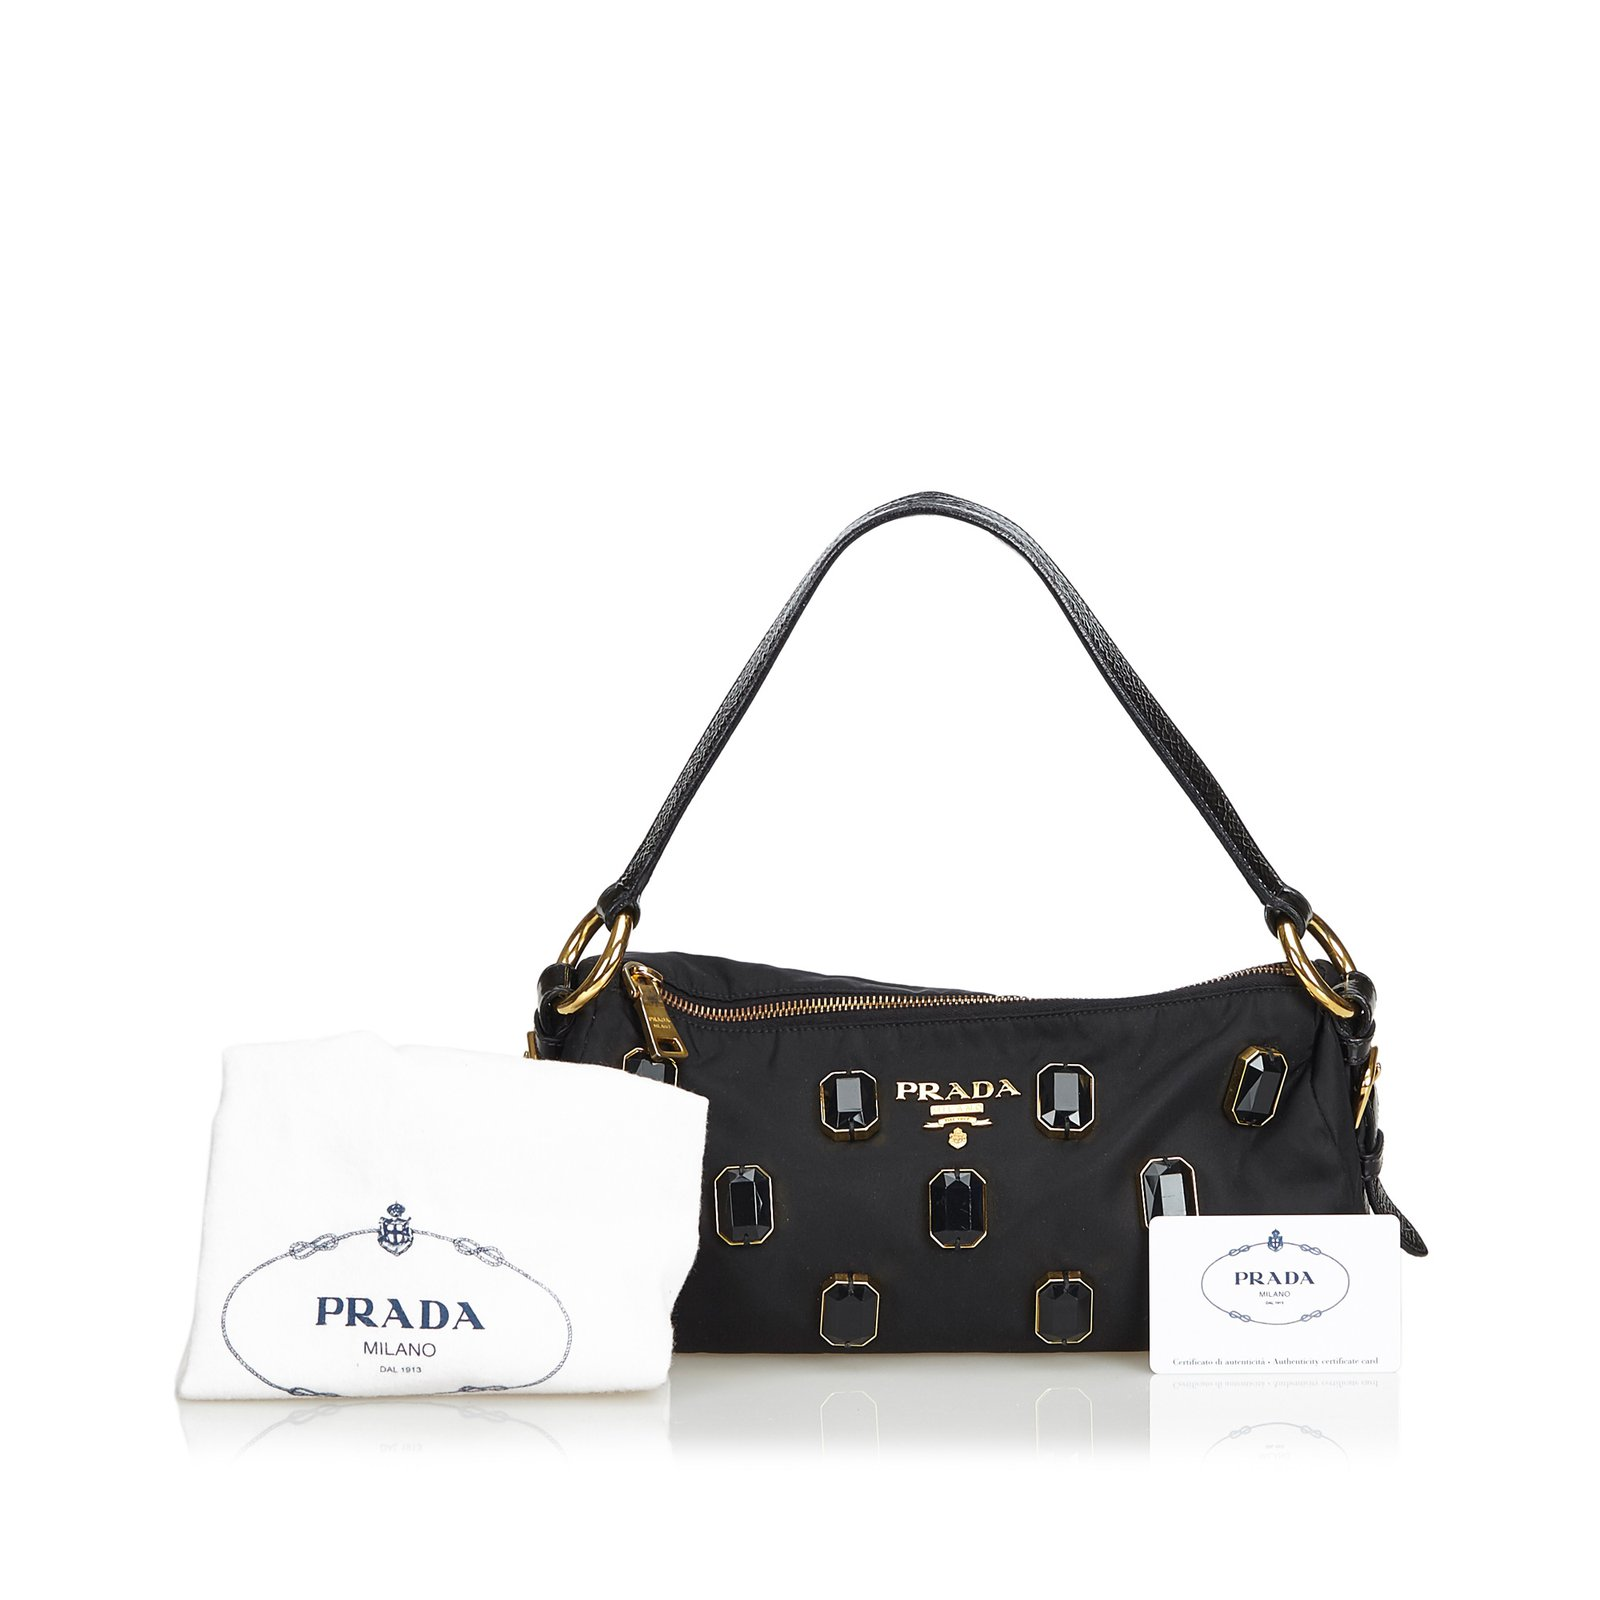 6fad78c7d4fe Prada Jewel-Embellished Nylon Baguette Handbags Leather,Patent leather,Nylon,Cloth  Black,Golden ref.103270 - Joli Closet